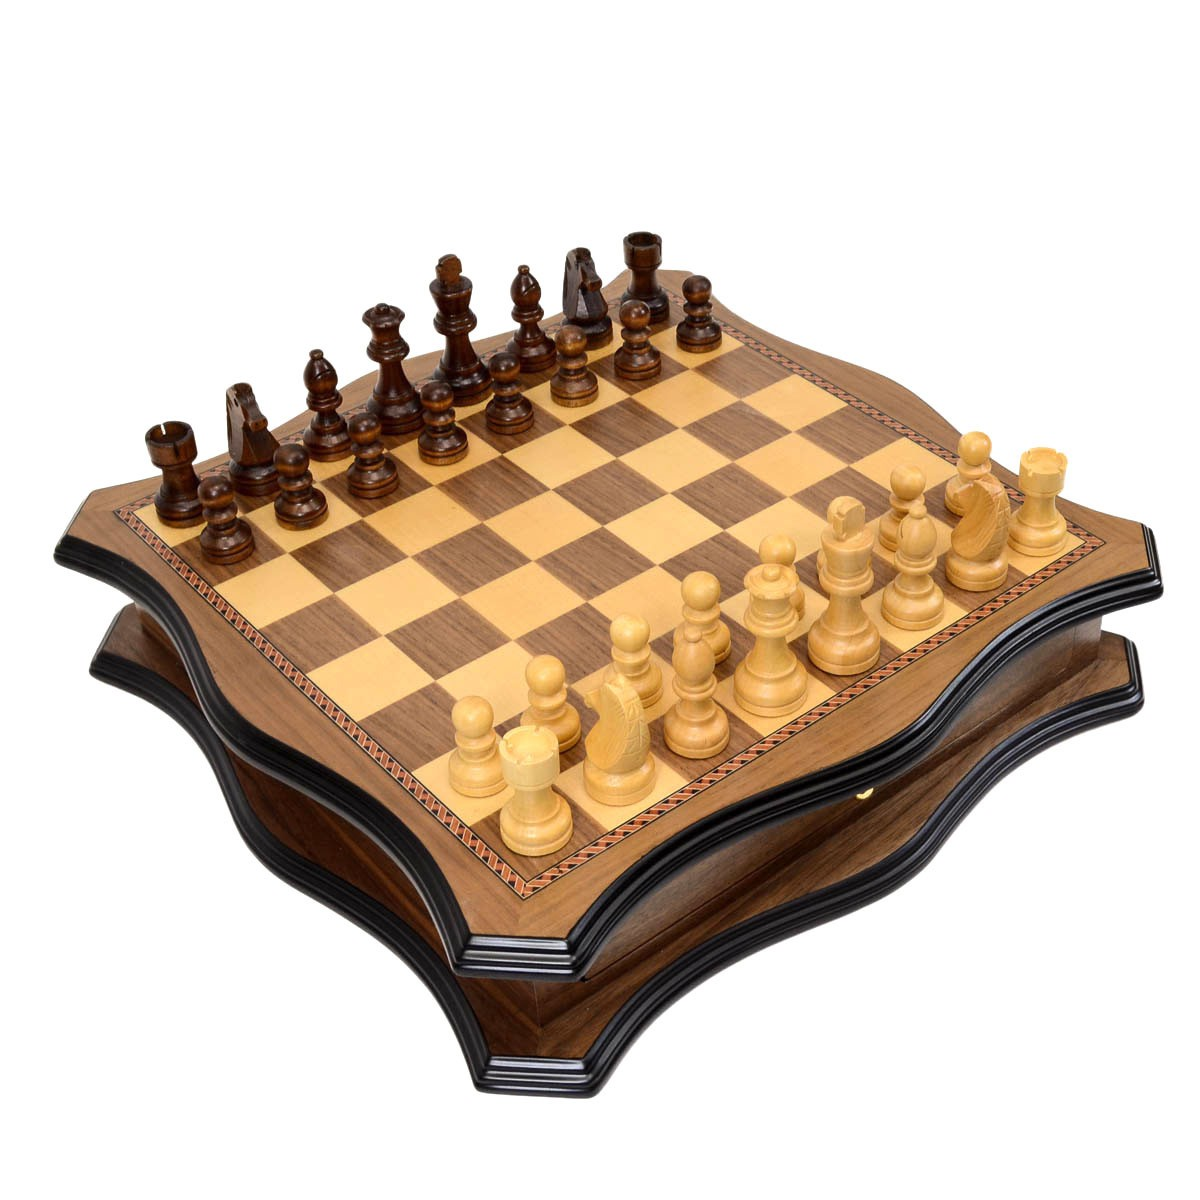 Your holiday chess buying guide - Ornate chess sets ...